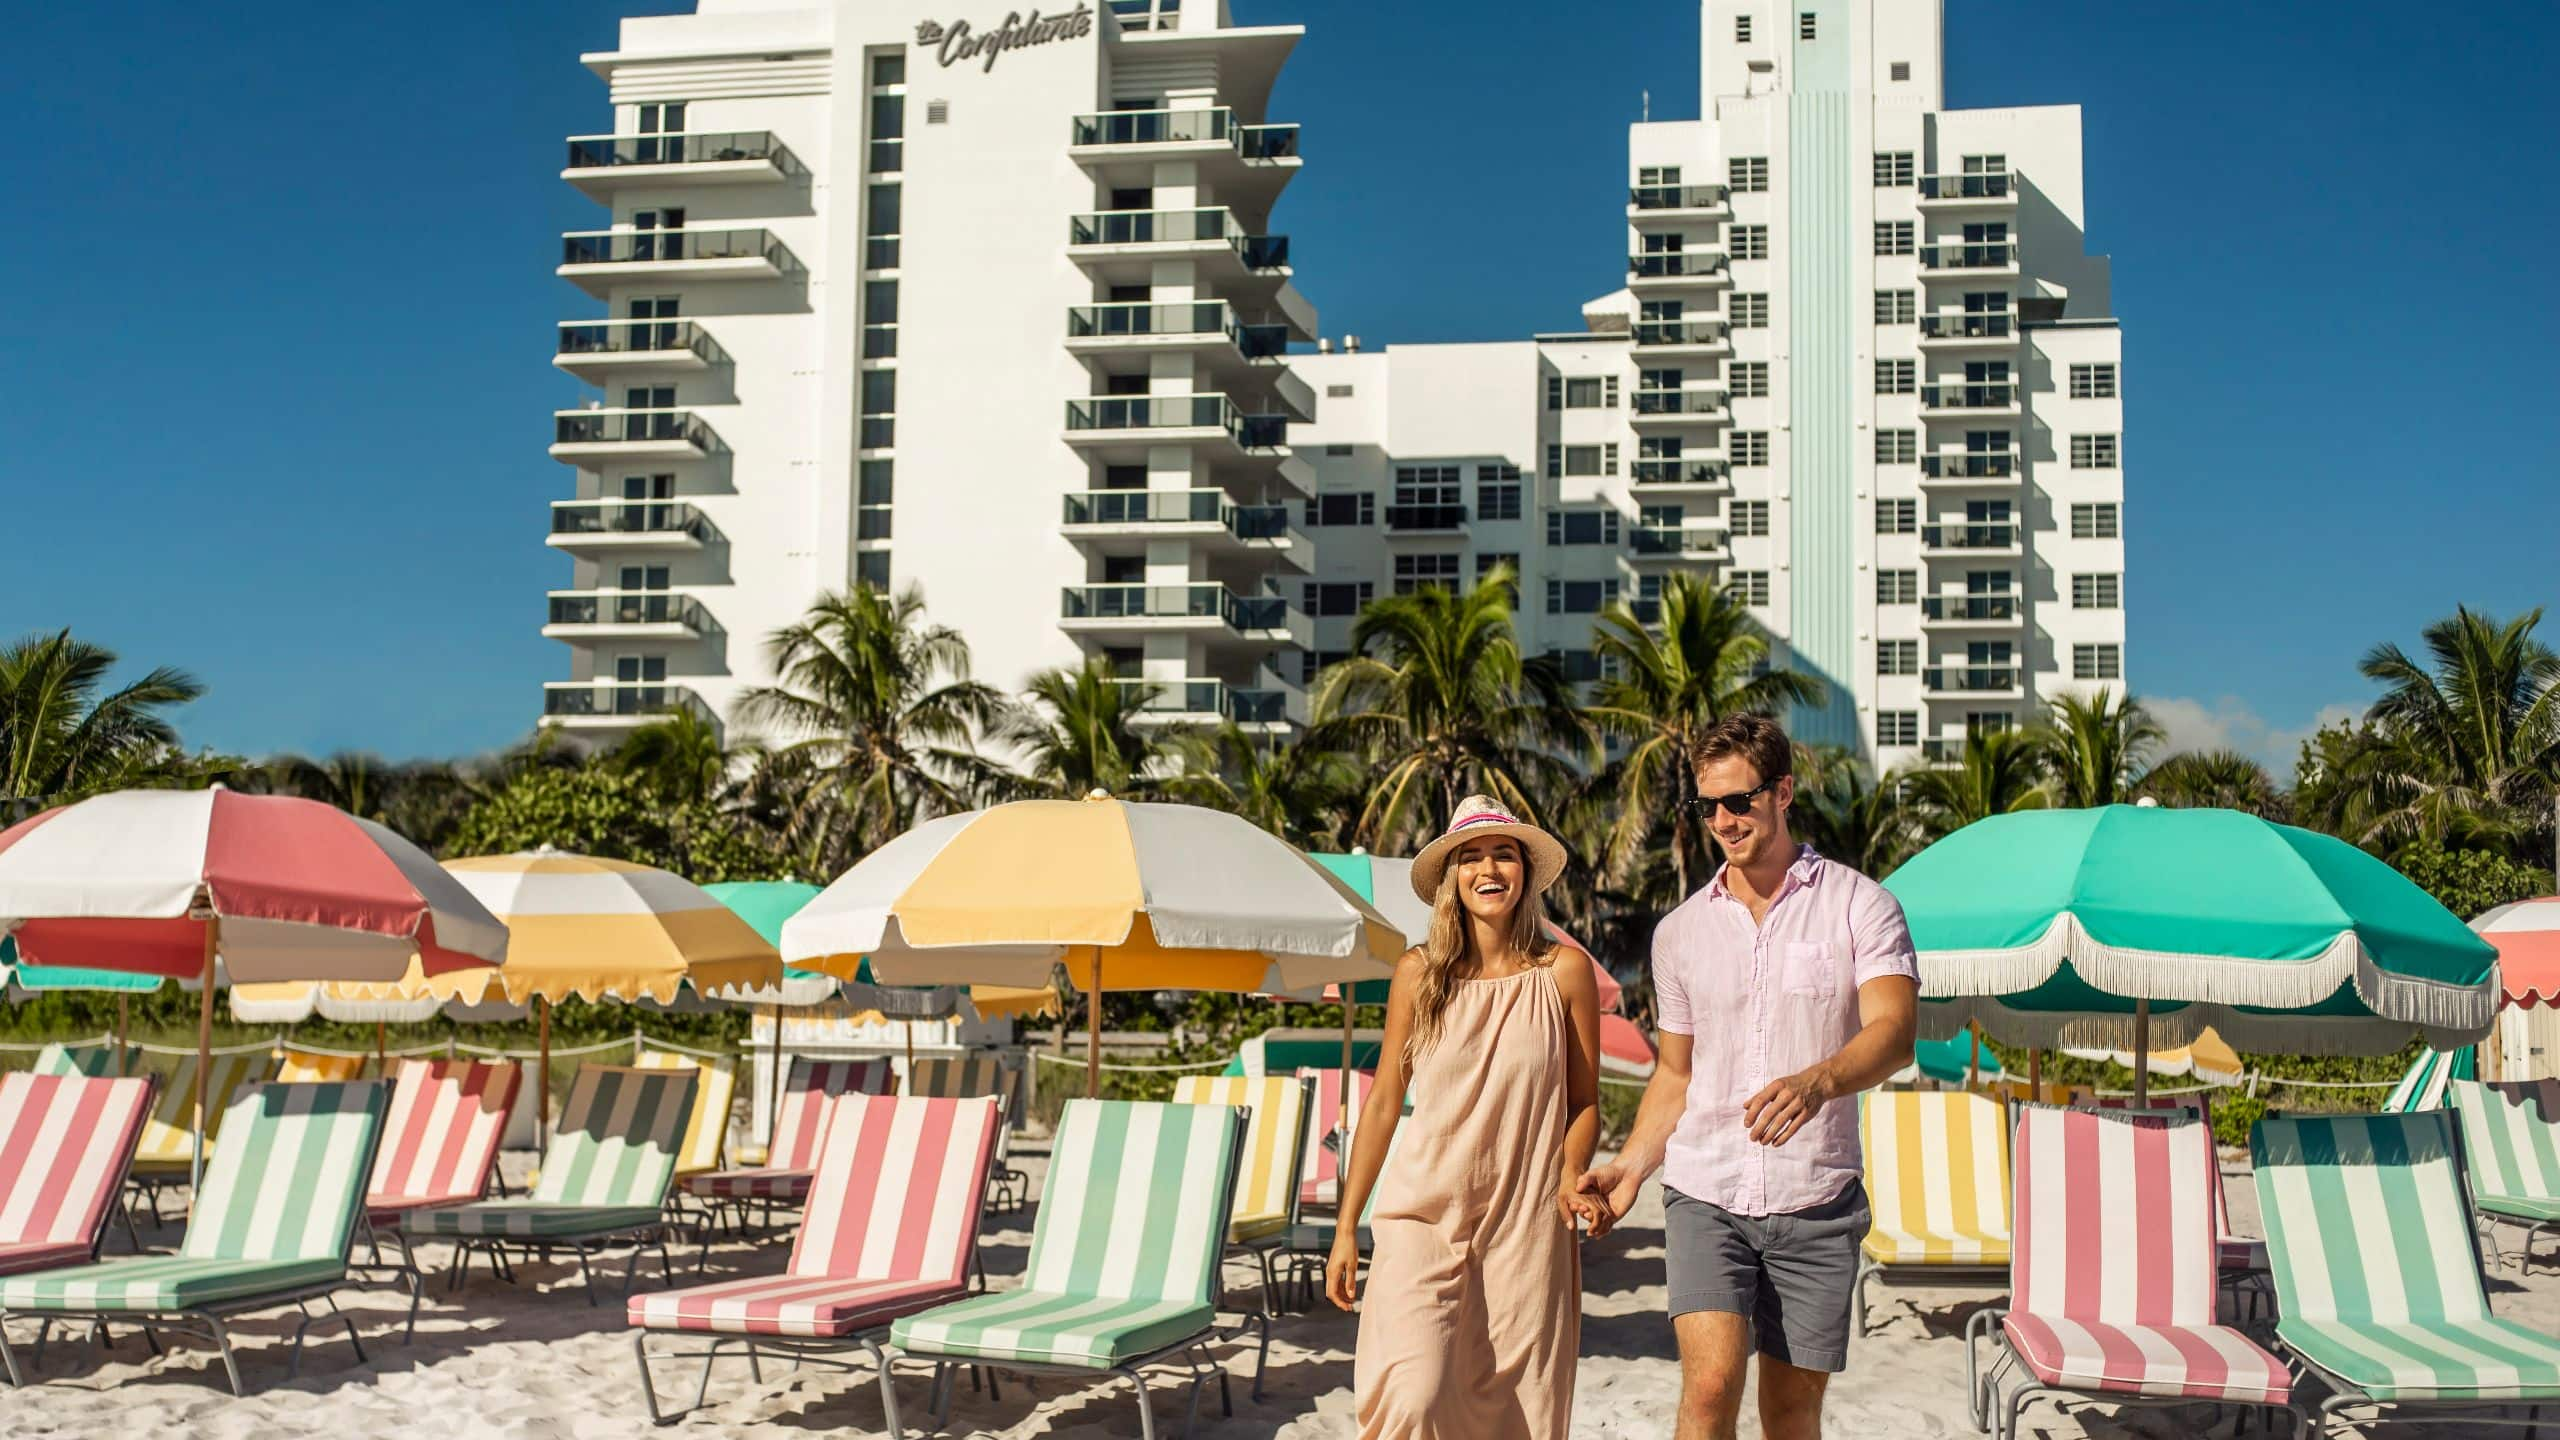 Hotels In Miami Beach >> Oceanfront Miami Beach Hotel The Confidante Miami Beach